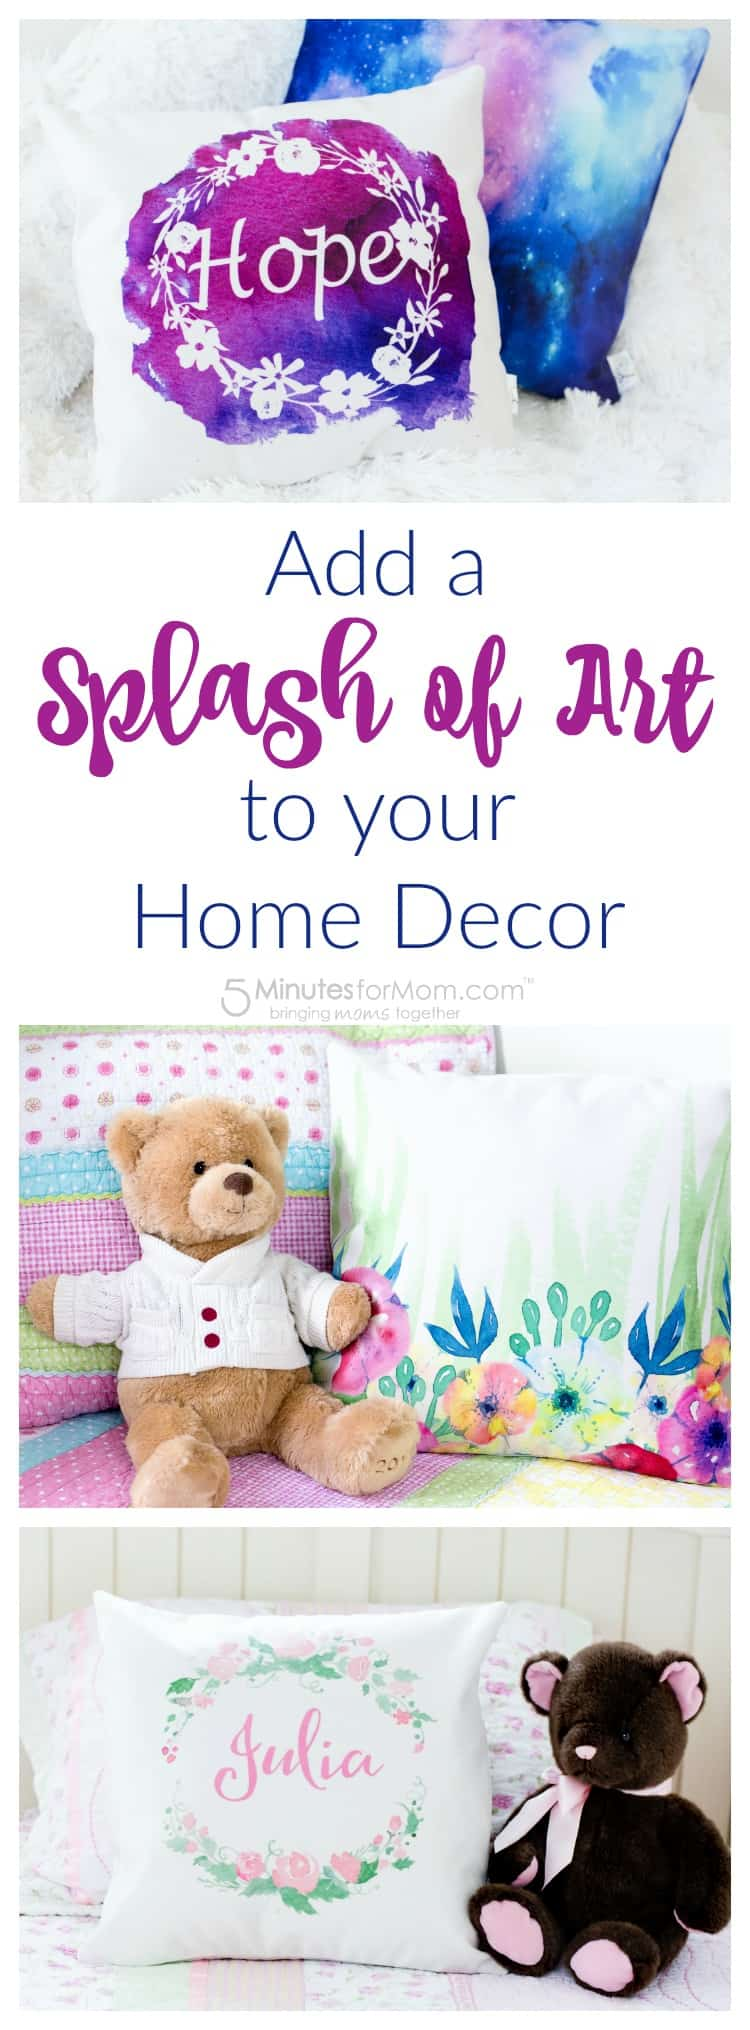 Add a splash of art to your home decor